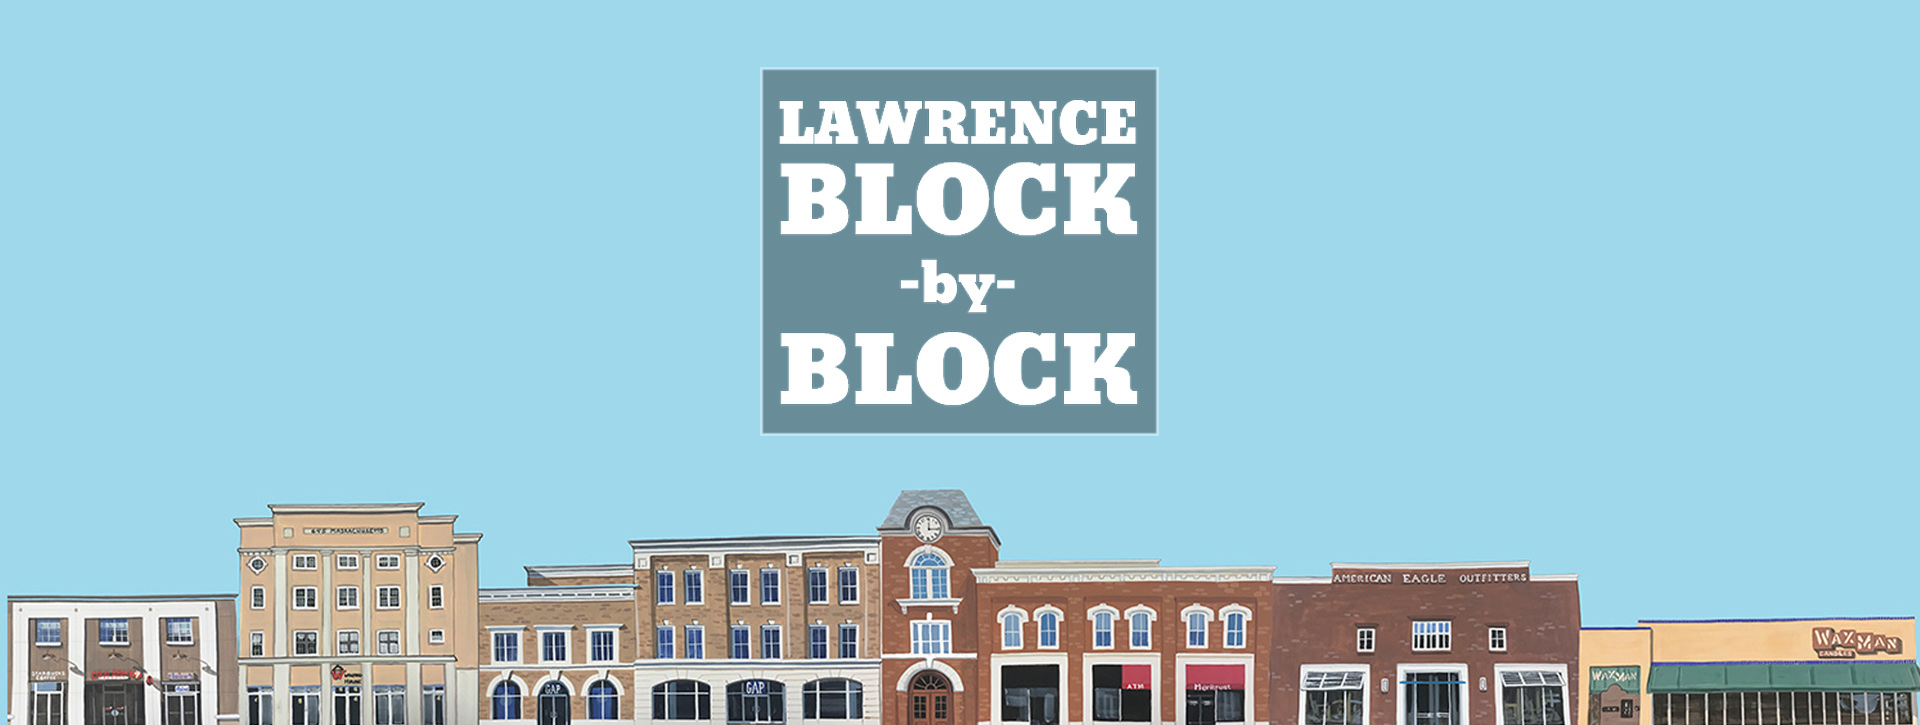 Block-by-Block is featured on the Unmistakably Lawrence website and displays timelines for buildings that students have researched. (Image courtesy of Unmistakably Lawrence)